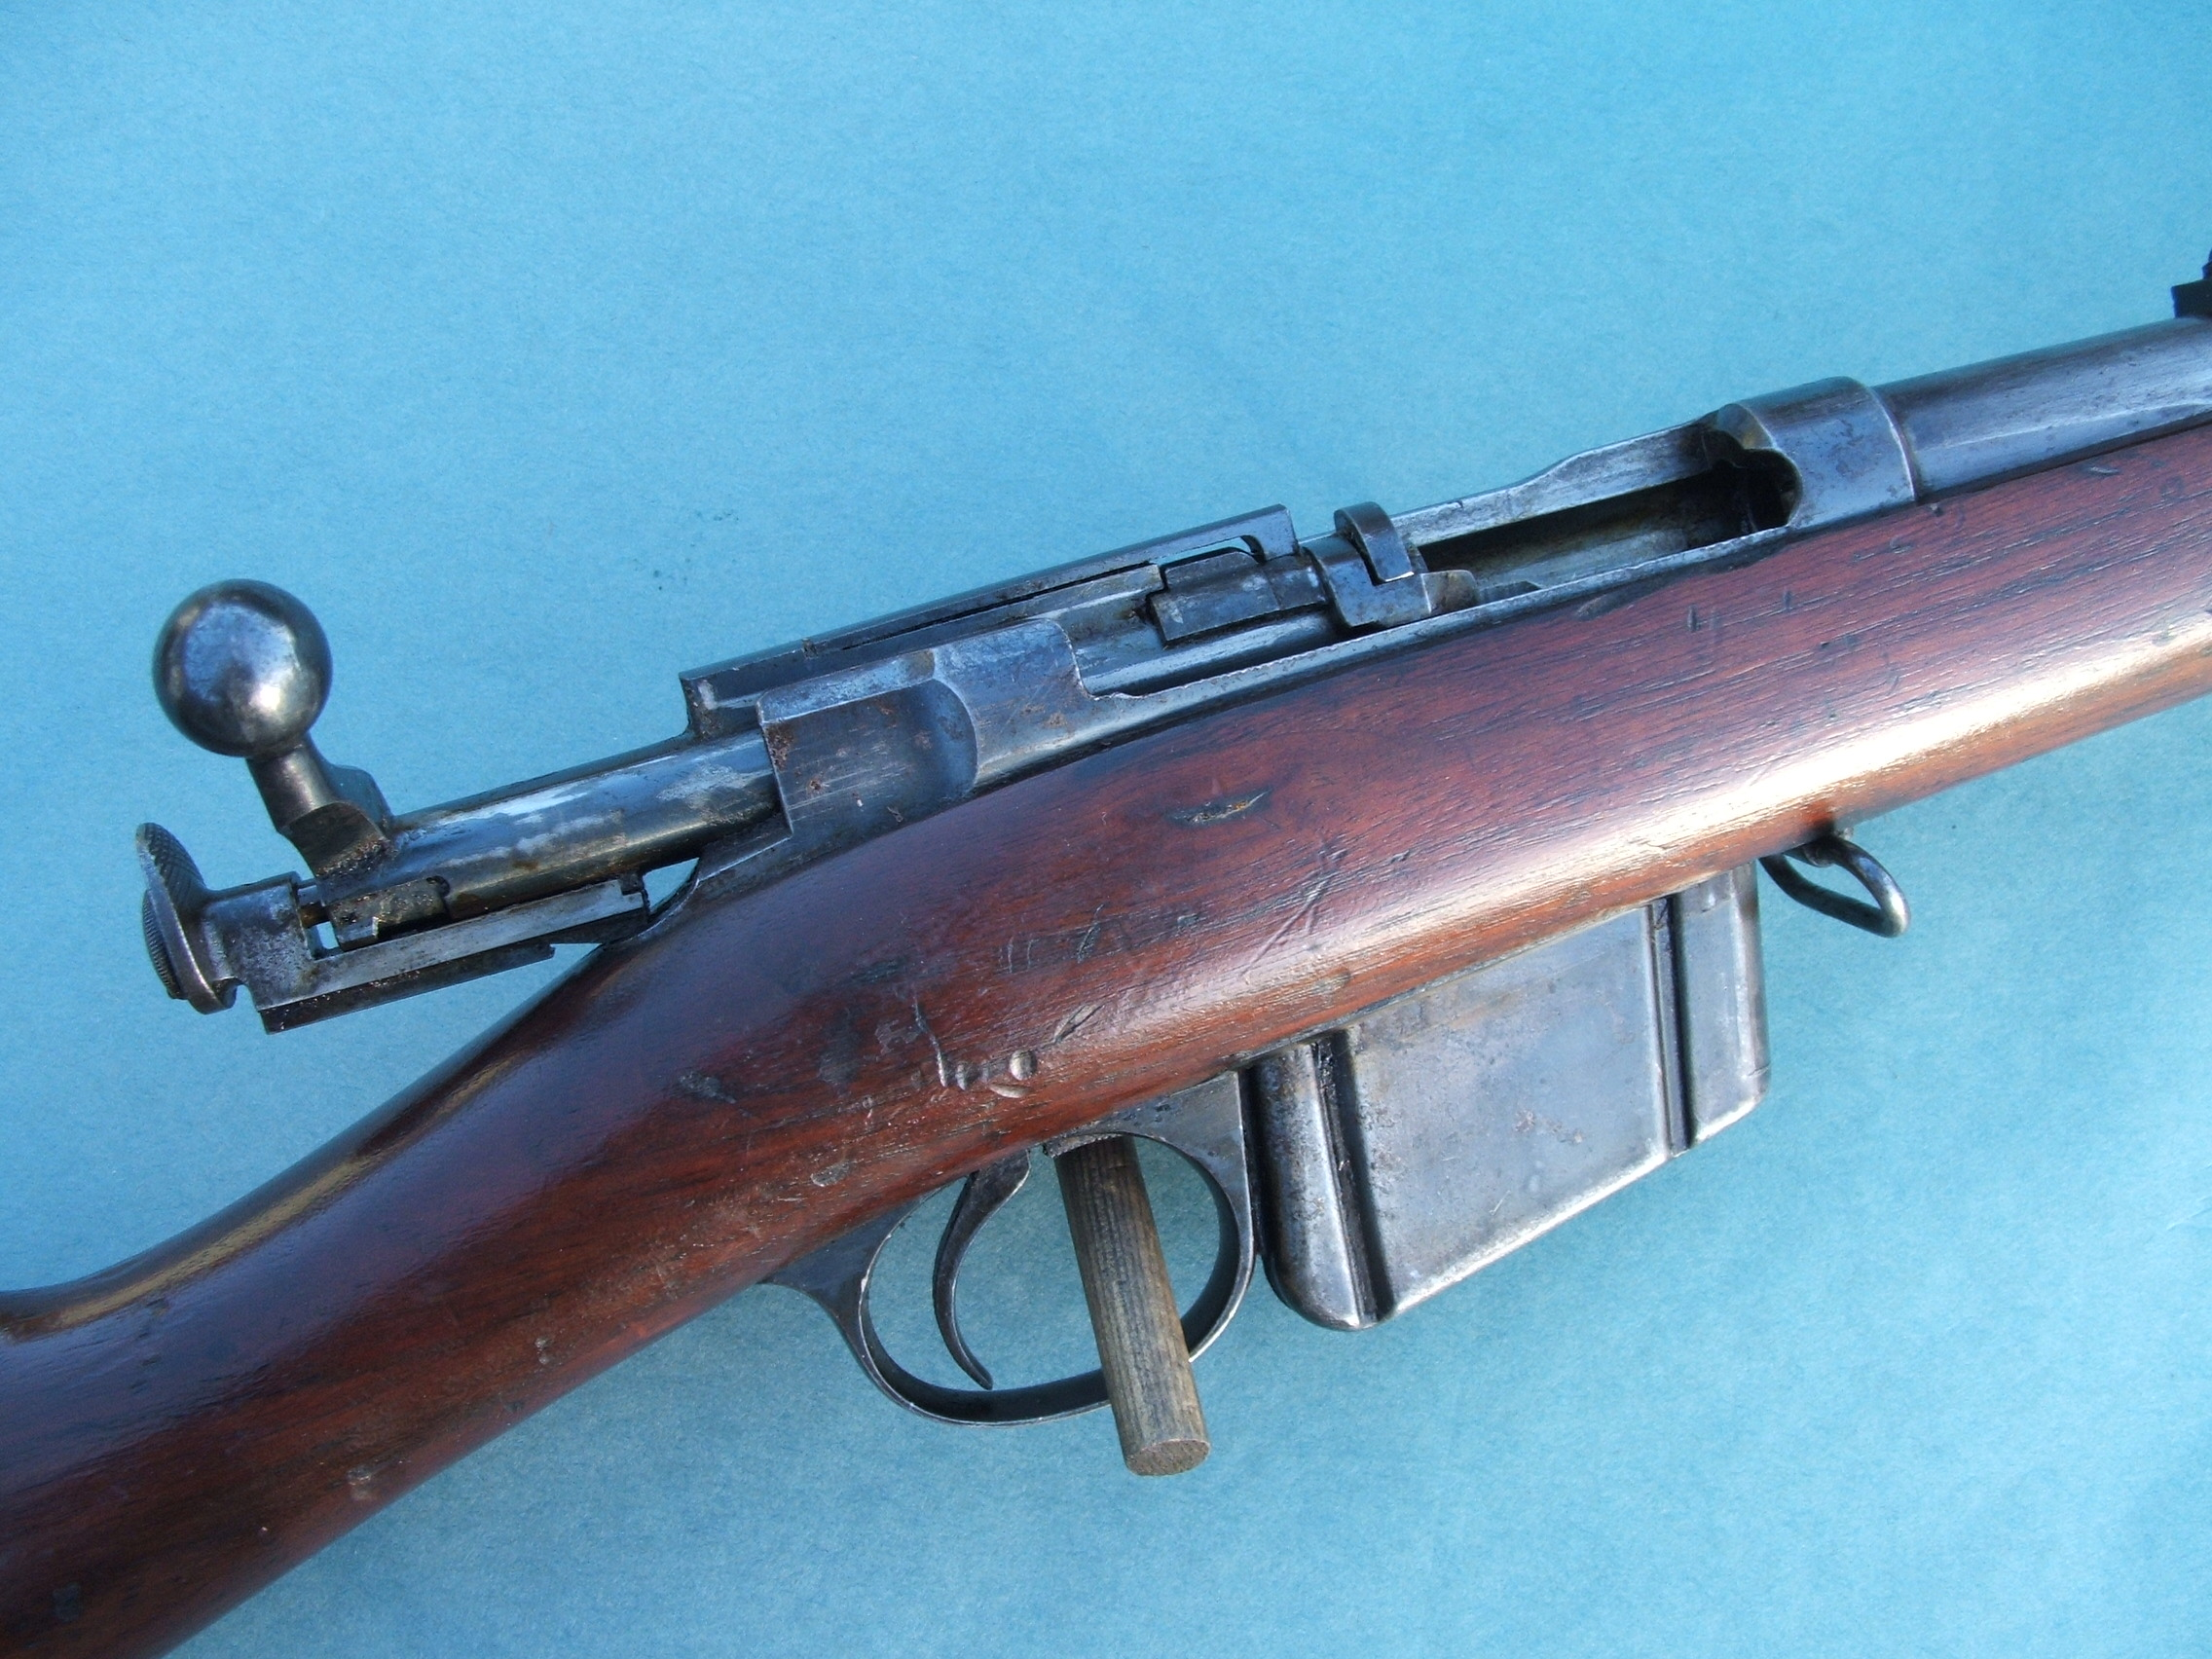 Lee Navy Rifle http://www.byswordandmusket.co.uk/past-sales/rifles-requiring-a-firearms-license/american-rifles/us-remington-lee-bolt-action-rifle/